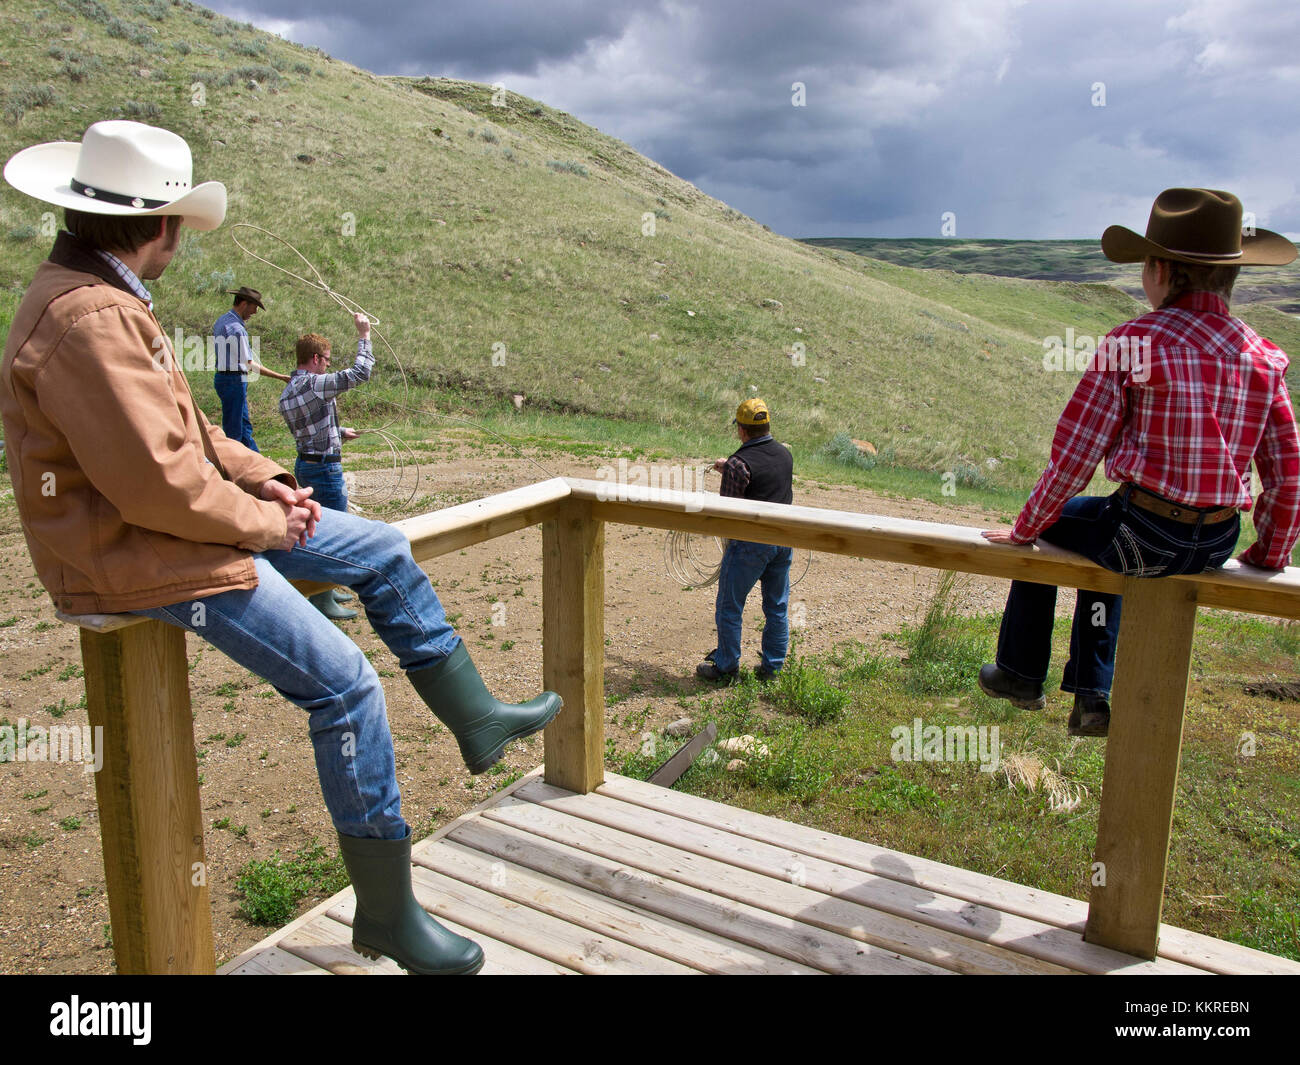 ranch guests practice lassoing - Stock Image